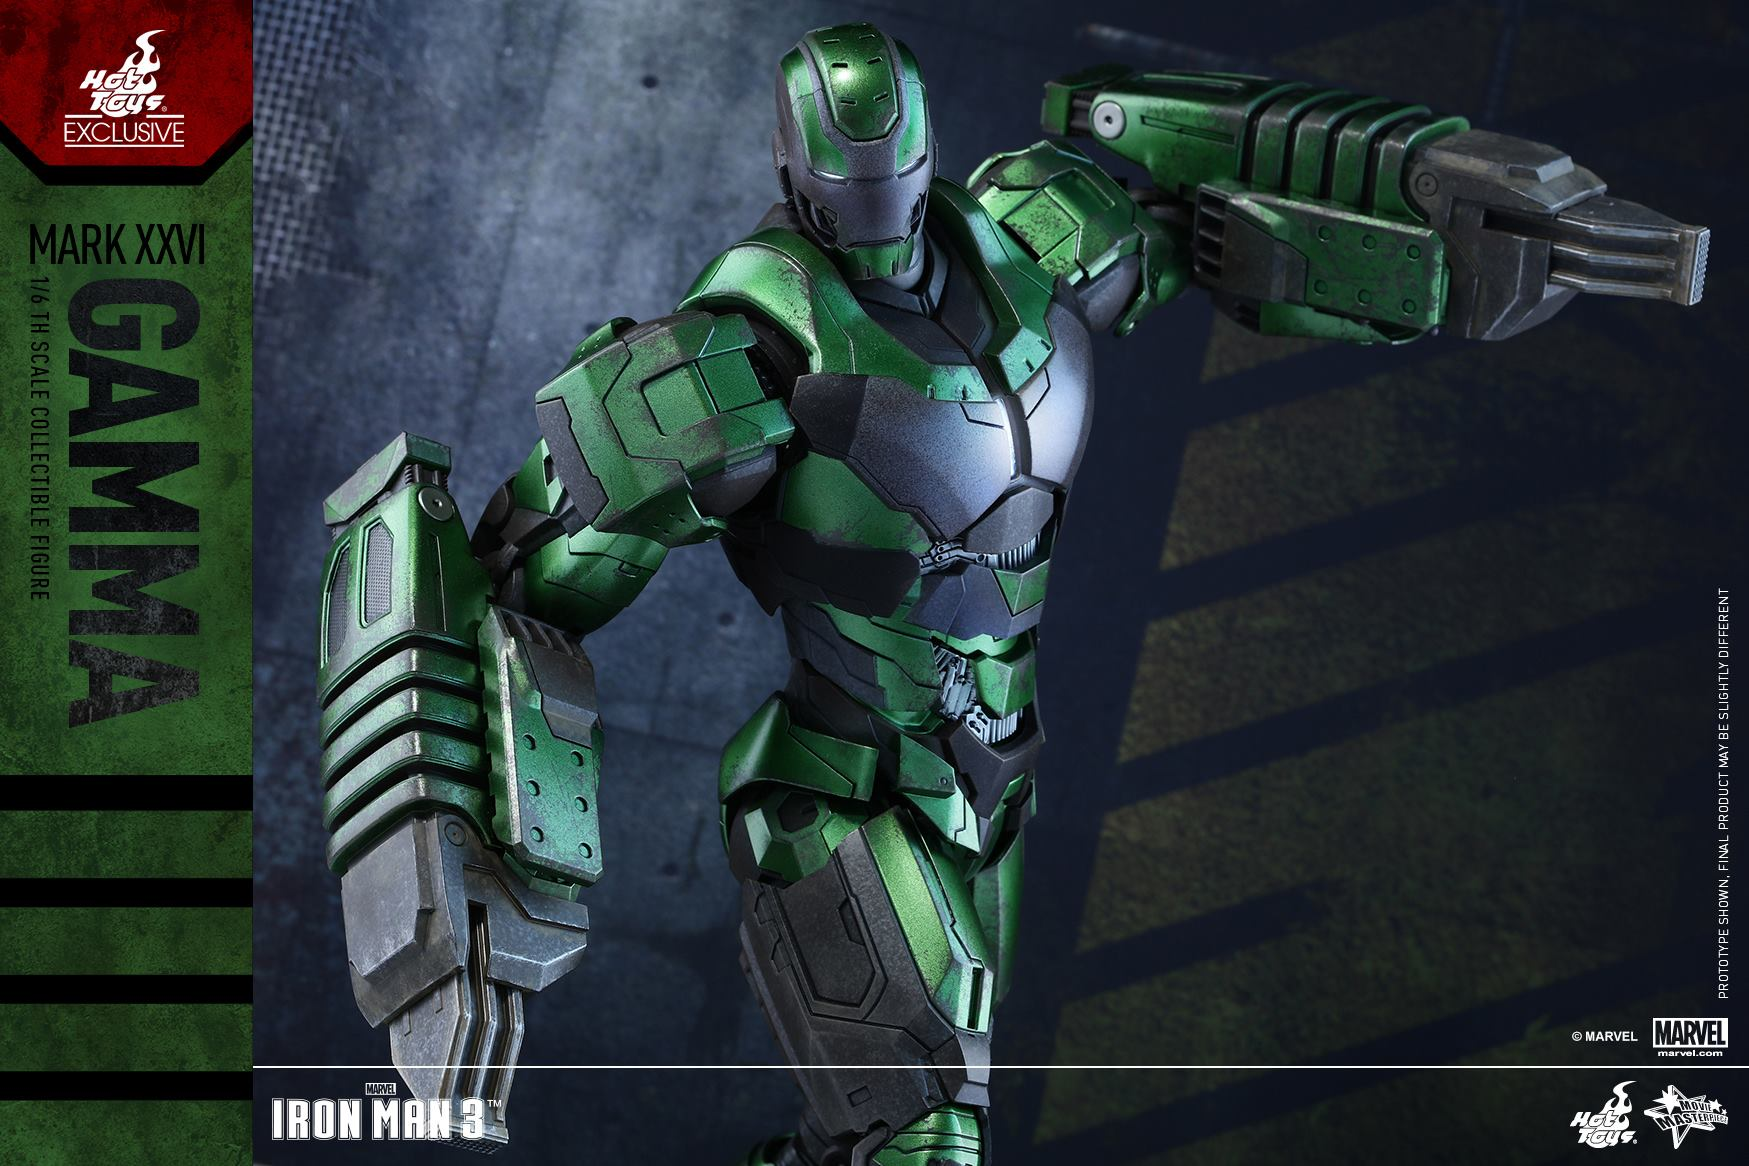 Hot Toys Gamma Iron Man Exclusive Up For Order Marvel Toy News Mark 25 Striker Figure Jackhammers